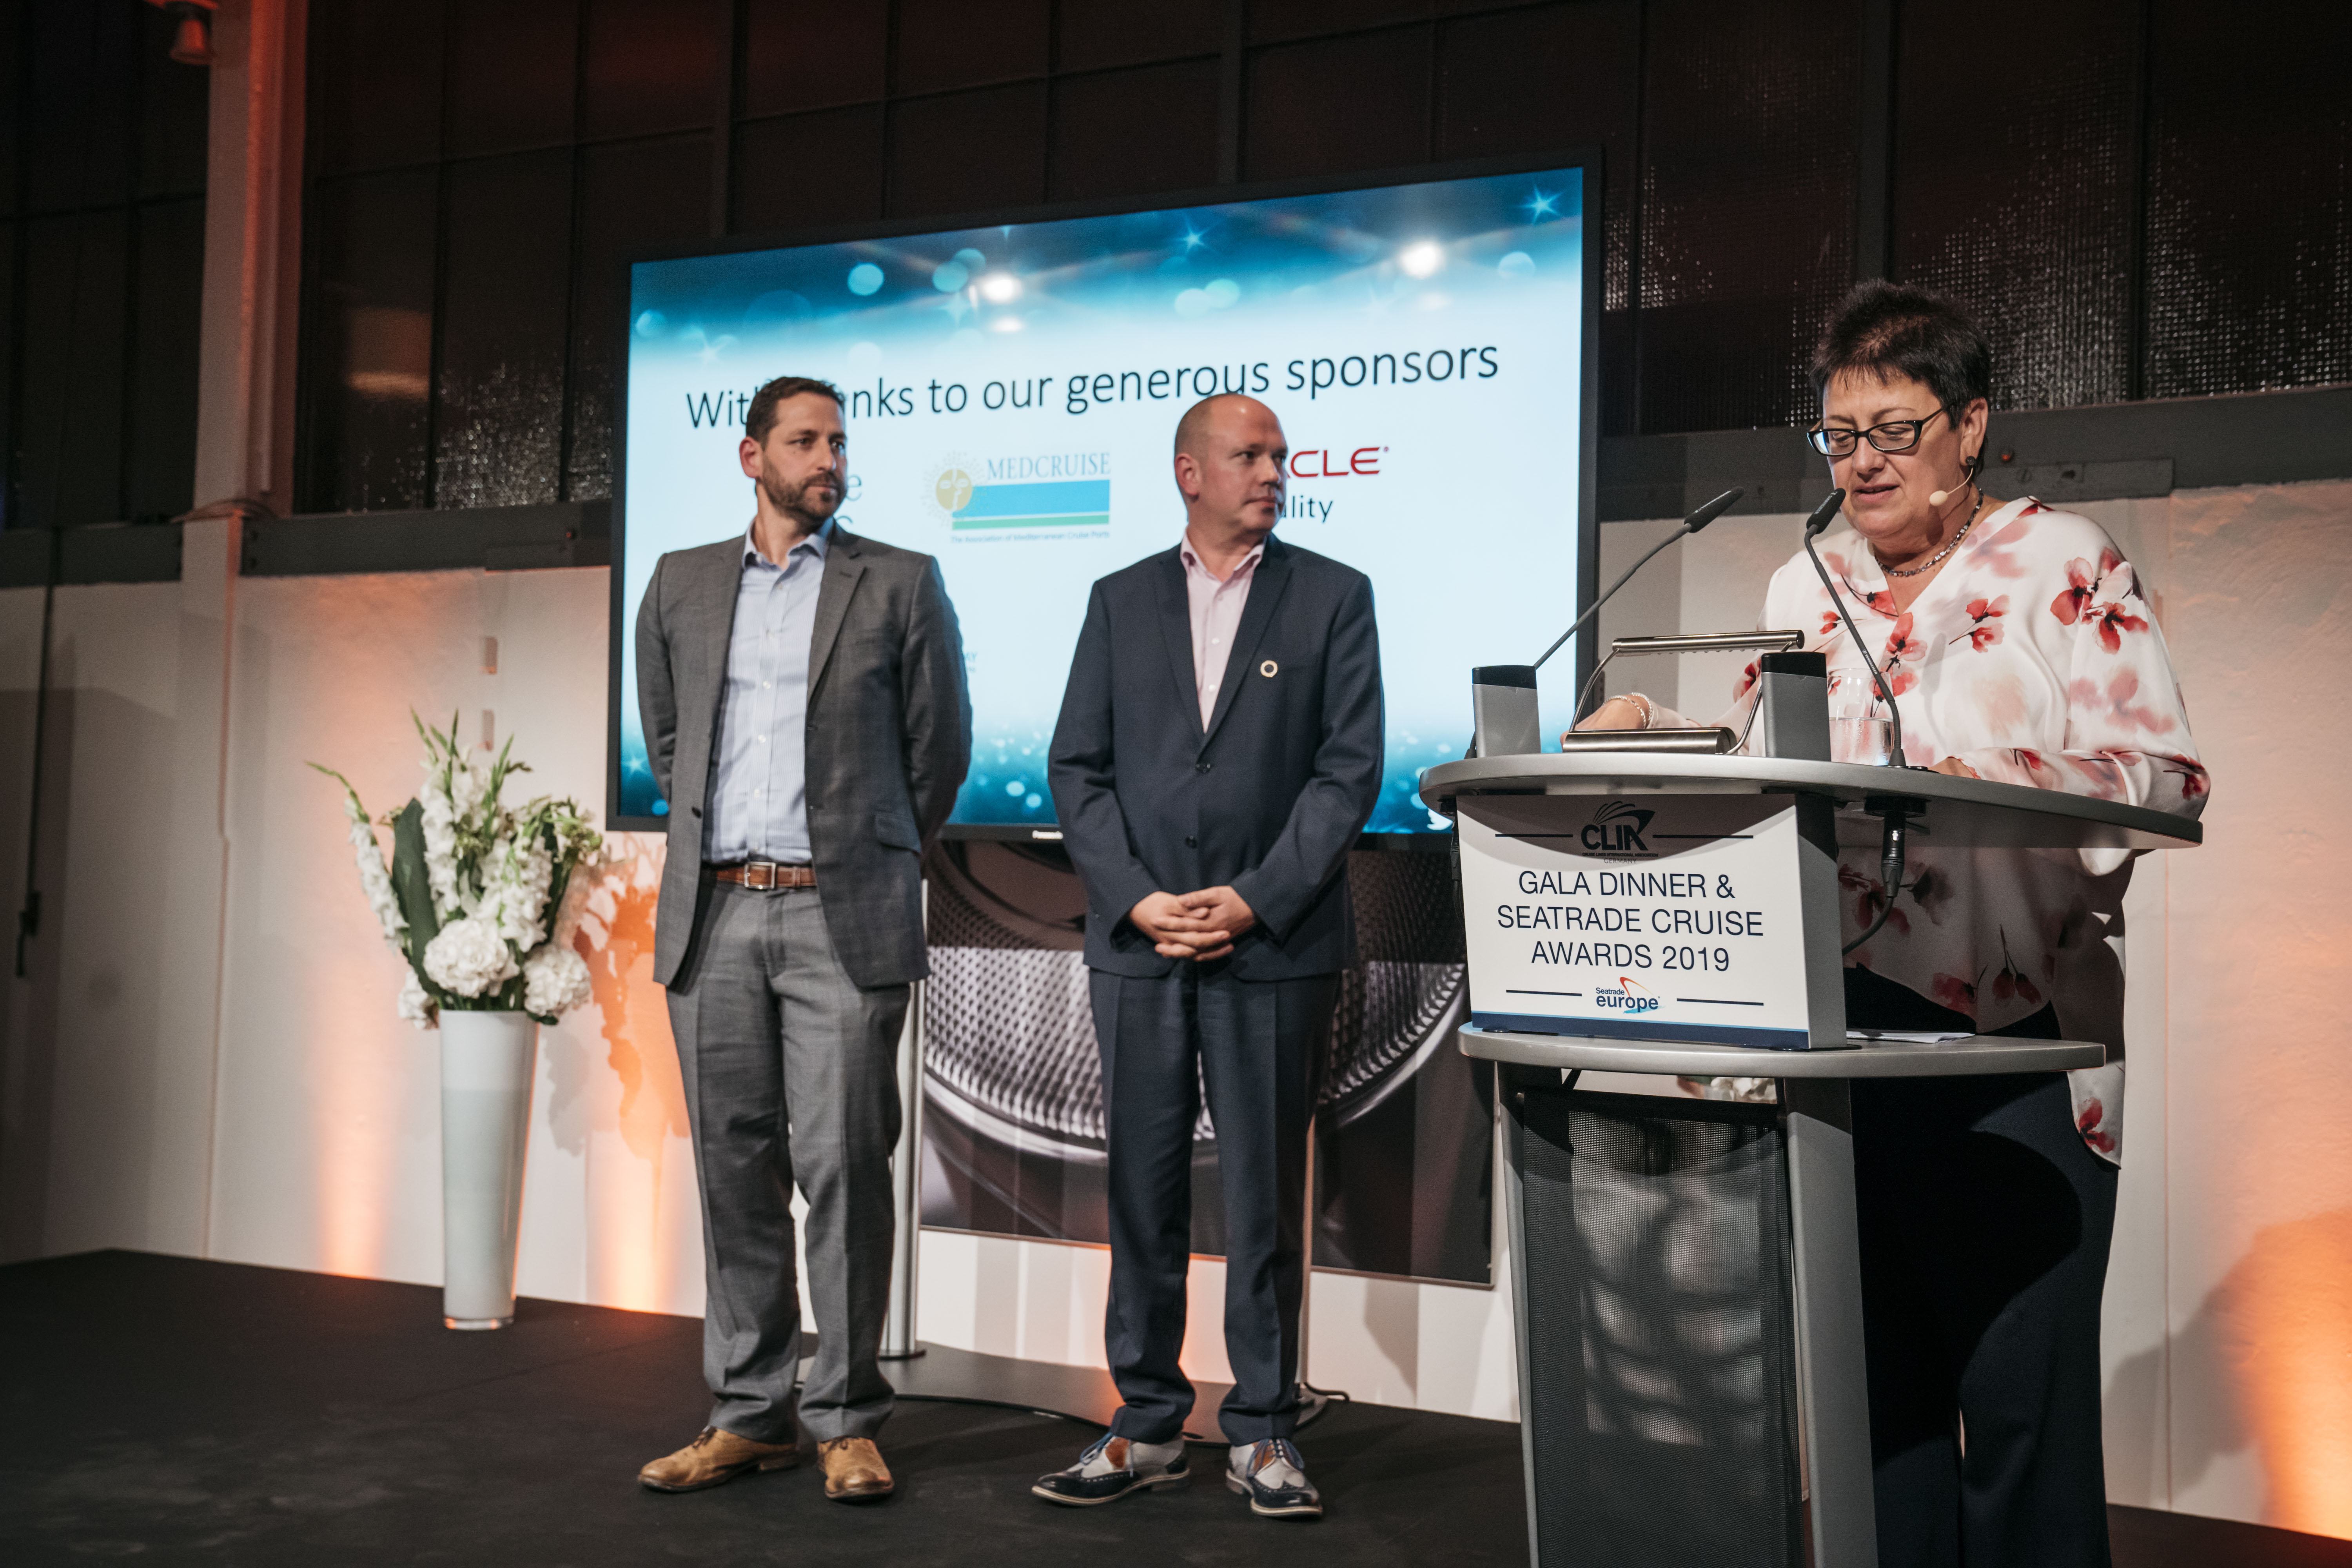 L-R Ian Richardson, CEO & Co-founder, TheICEWay, Ingo Soerensen, Area VP, Global Cruise Sales, Oracle Hospitality and Mary Bond, Group Director, Seatrade Cruise